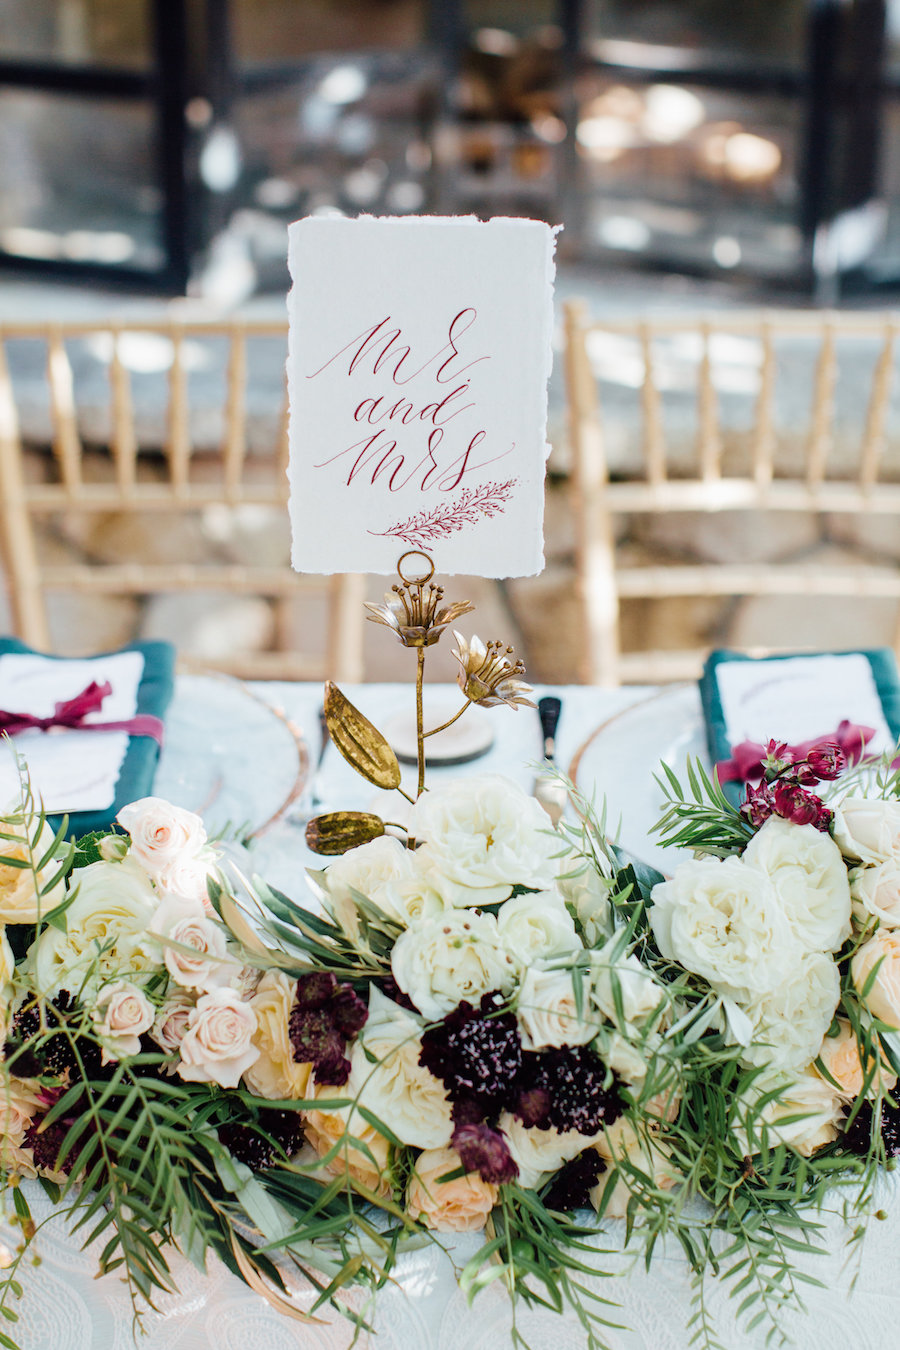 Chic Jewel-Toned Styled Shoot Featured on California Wedding Day11.jpg